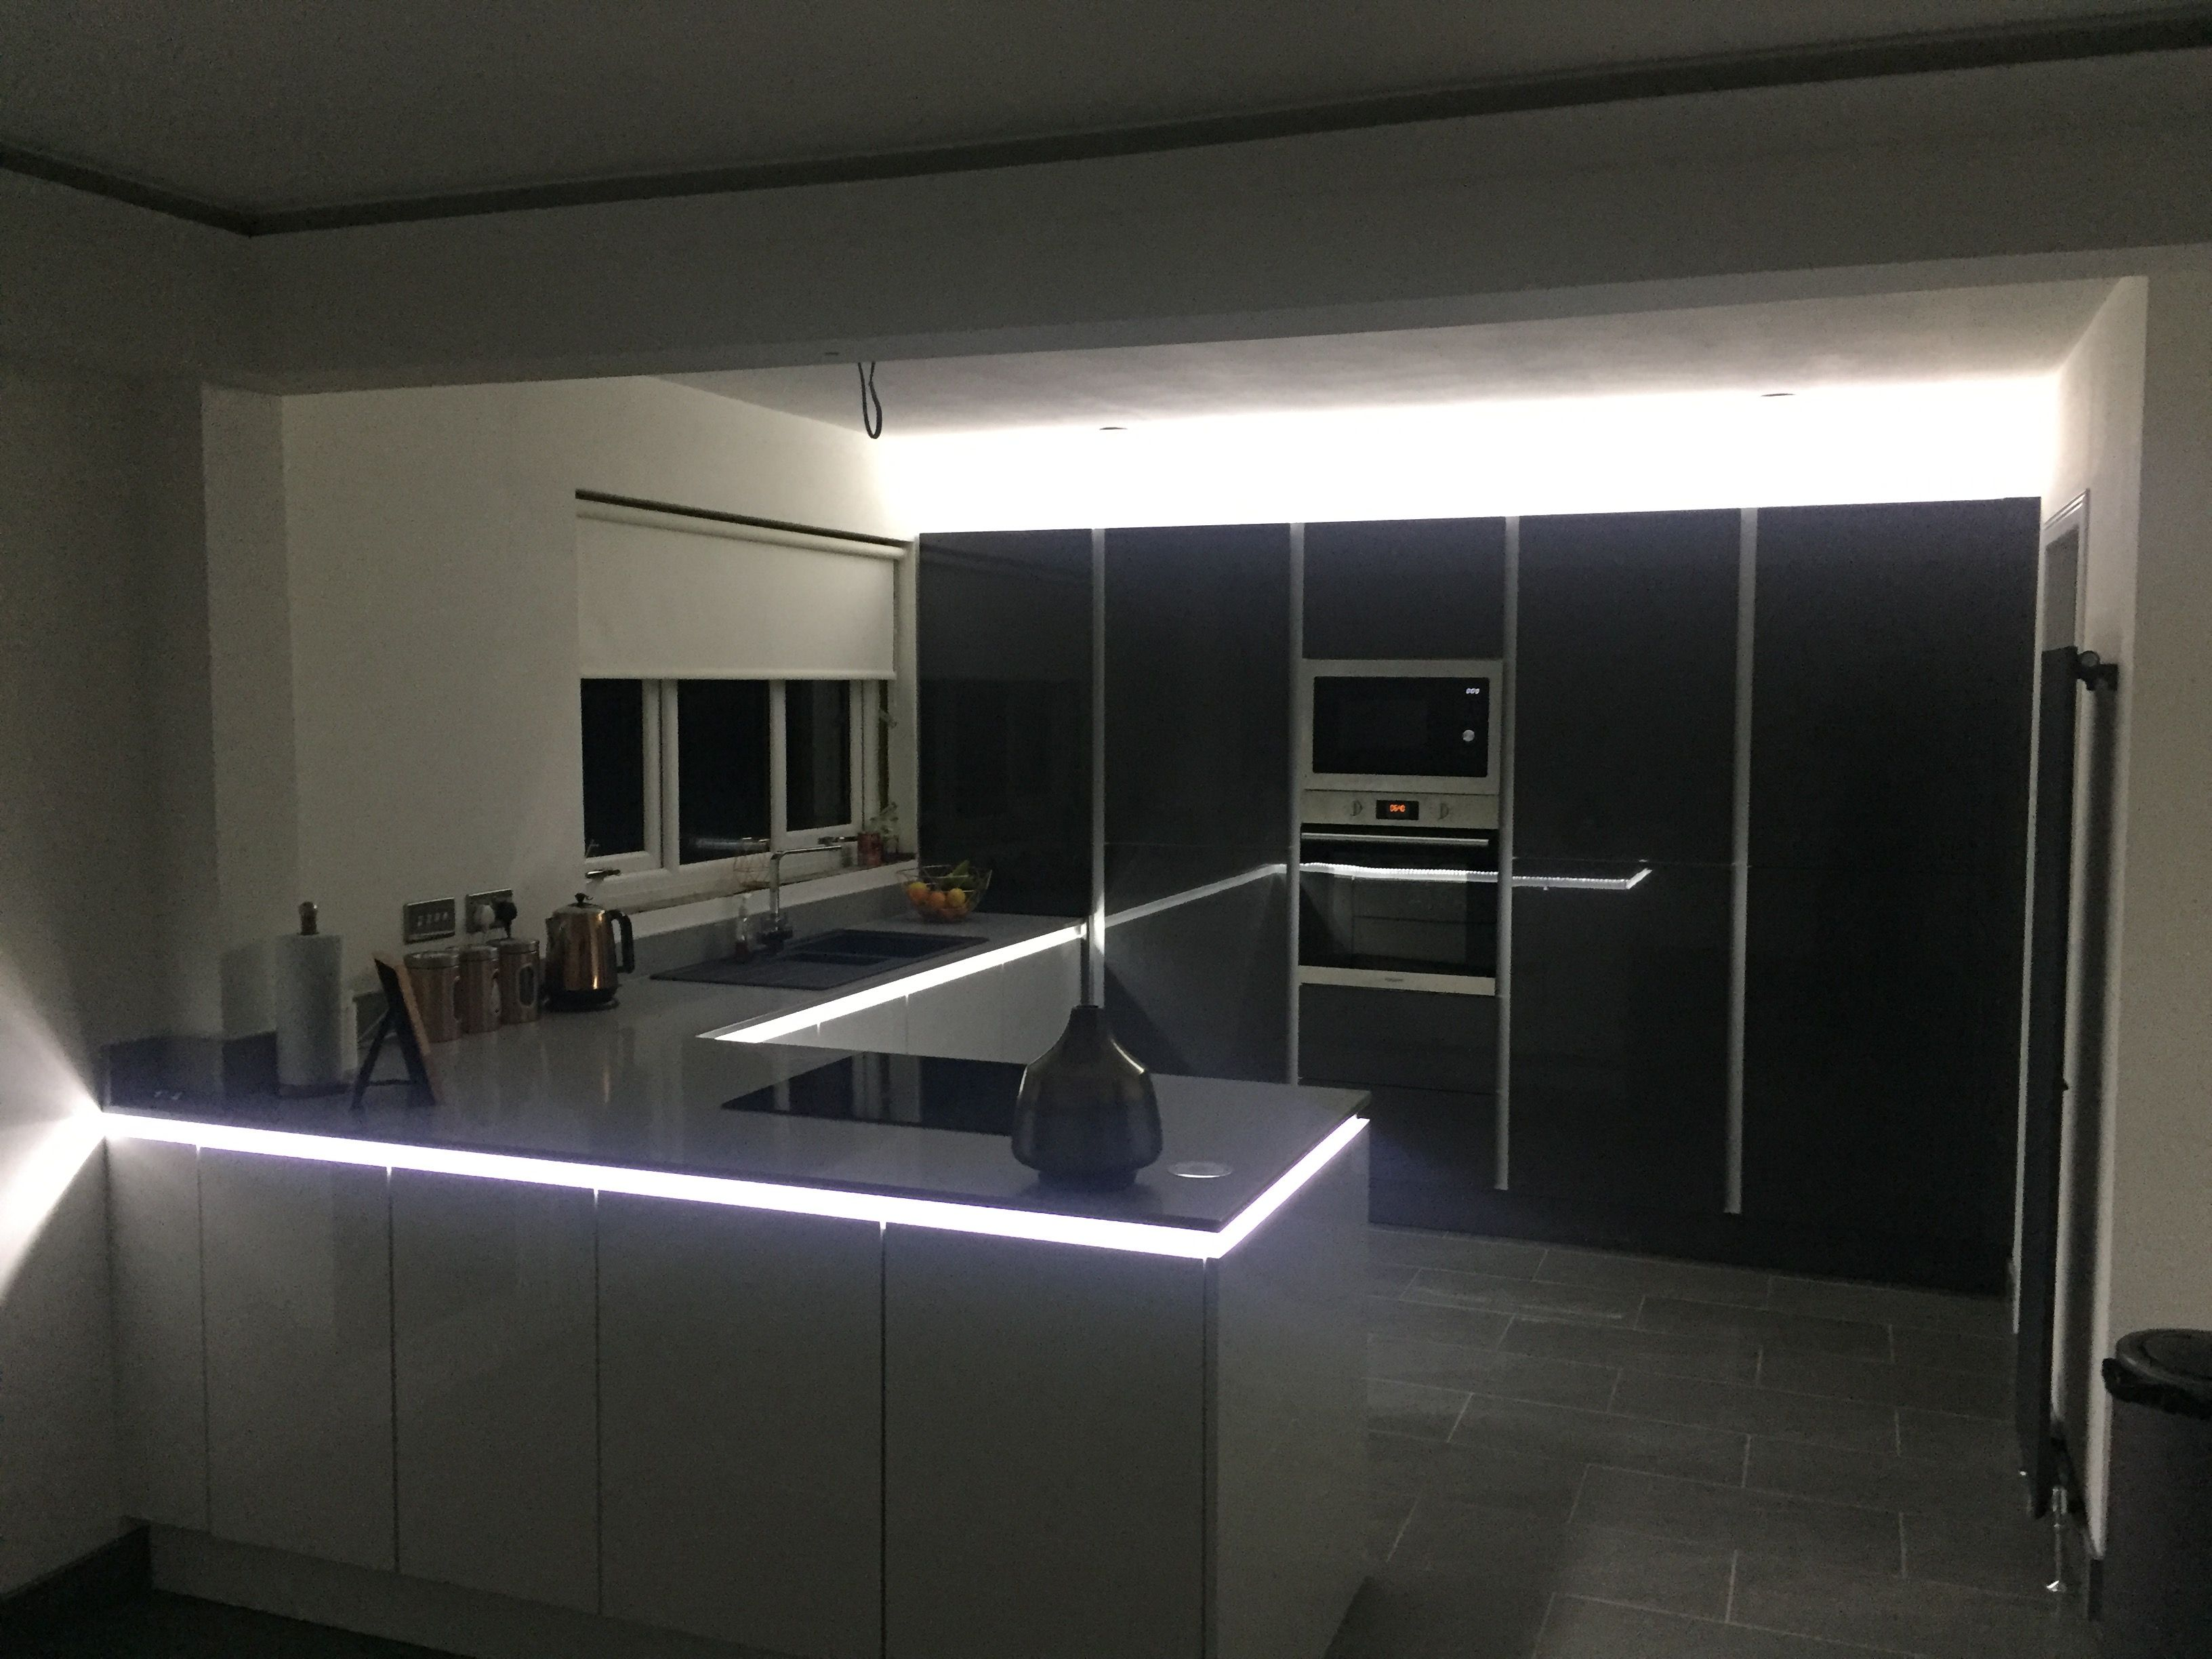 Led Strip Lights Under 20mm Stone Worktop With True Handless